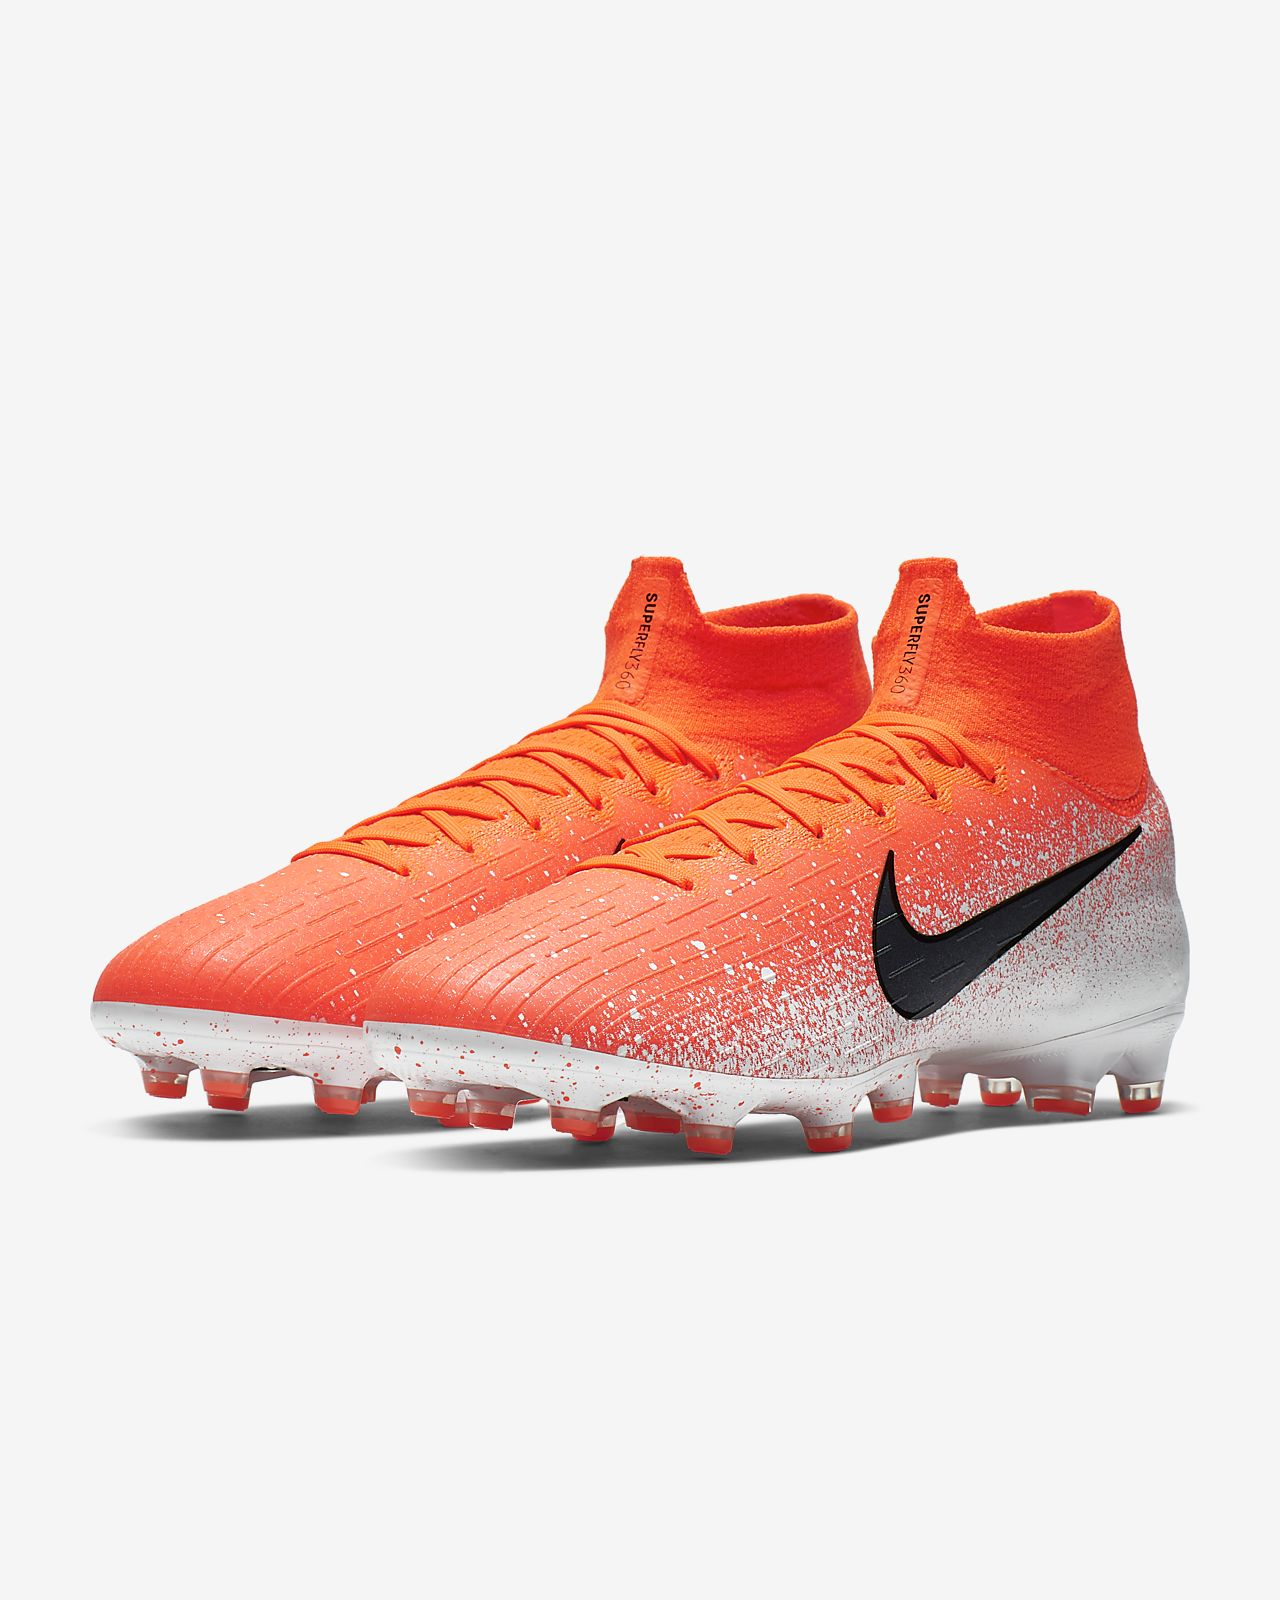 new product fad3f aa2cf Nike Mercurial Superfly 360 Elite AG-PRO Artificial-Grass Football Boot